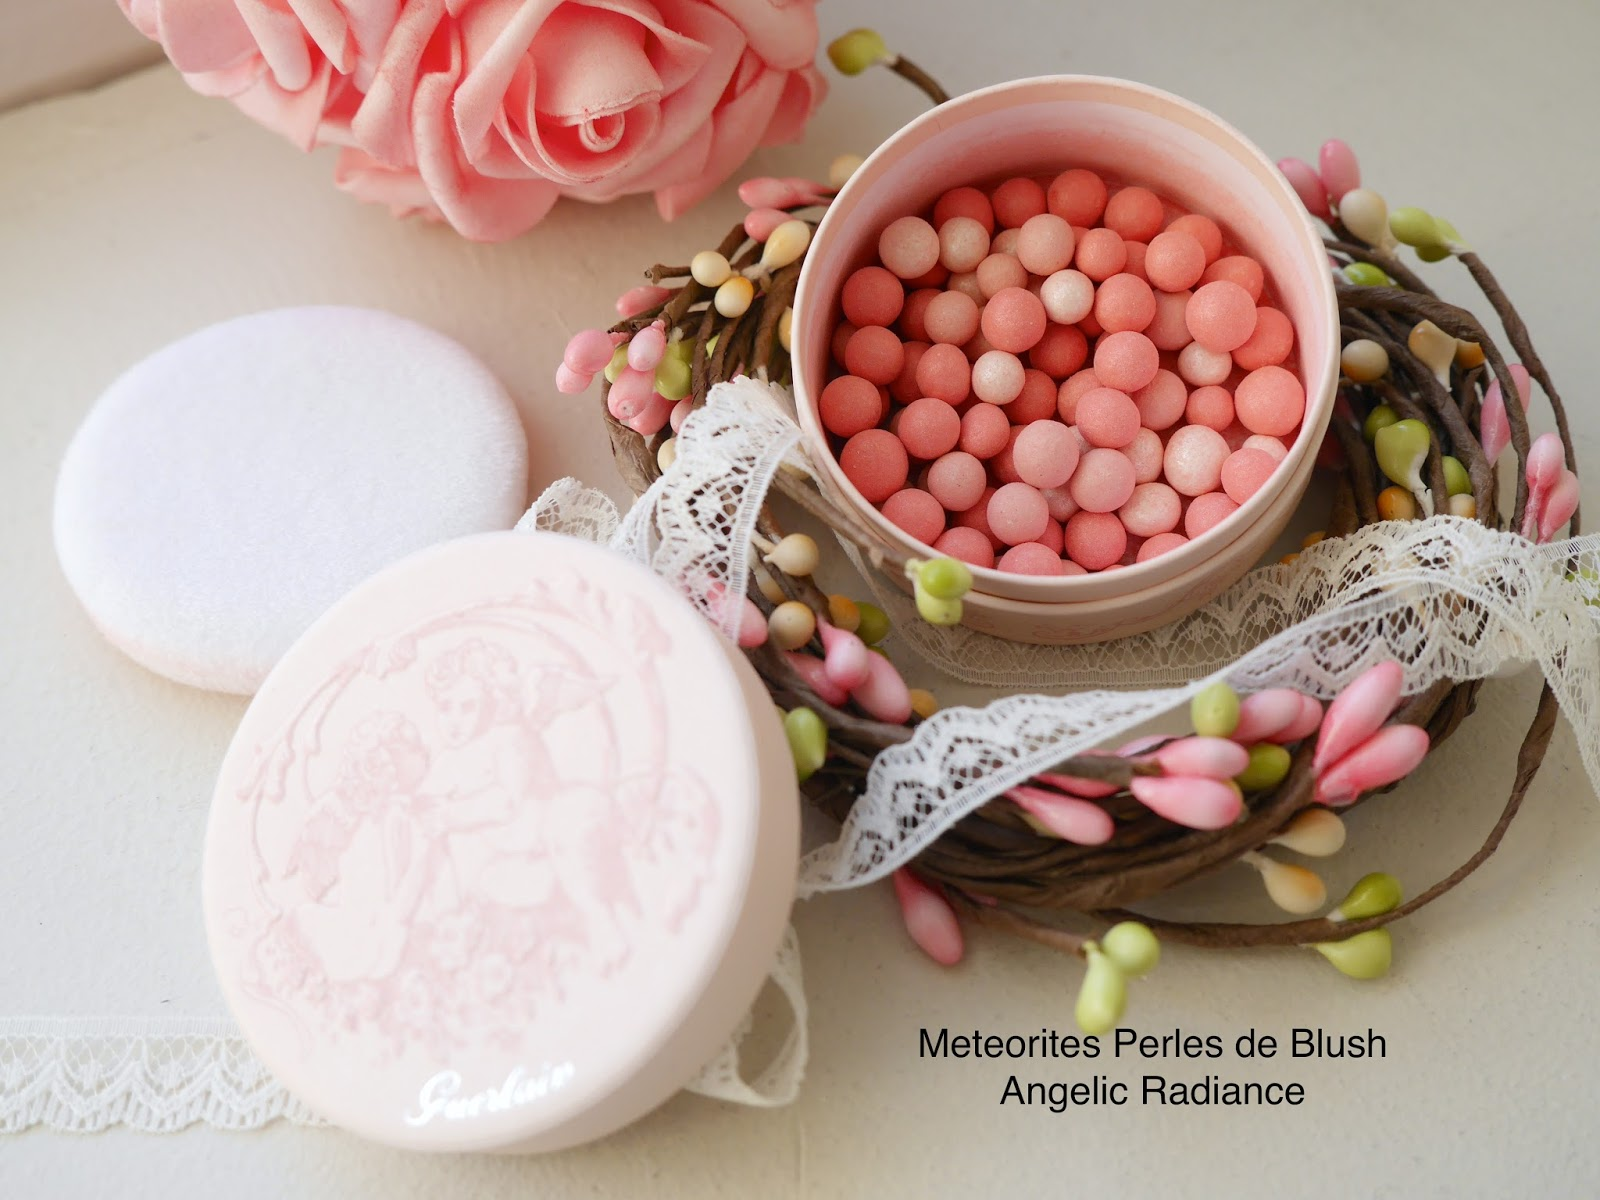 guerlain meteorites perles de blush angelic radience swatch review